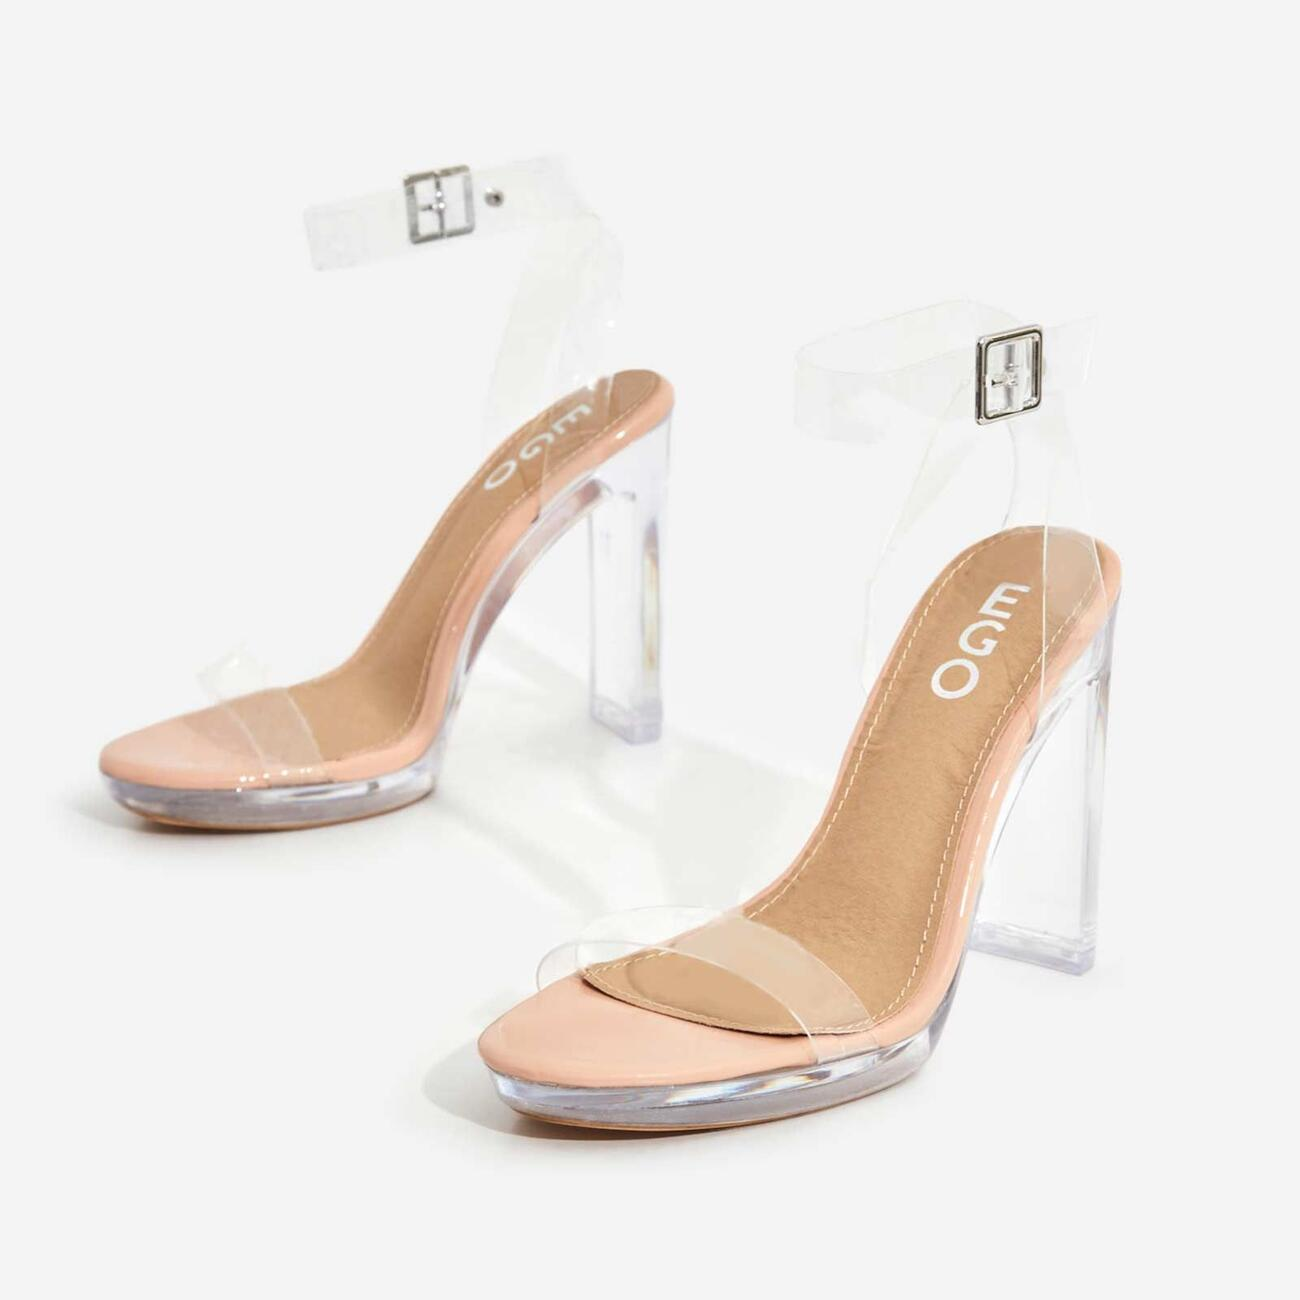 Icy Platform Barely There Perspex Thin Block Clear Heel In Nude Patent Image 2